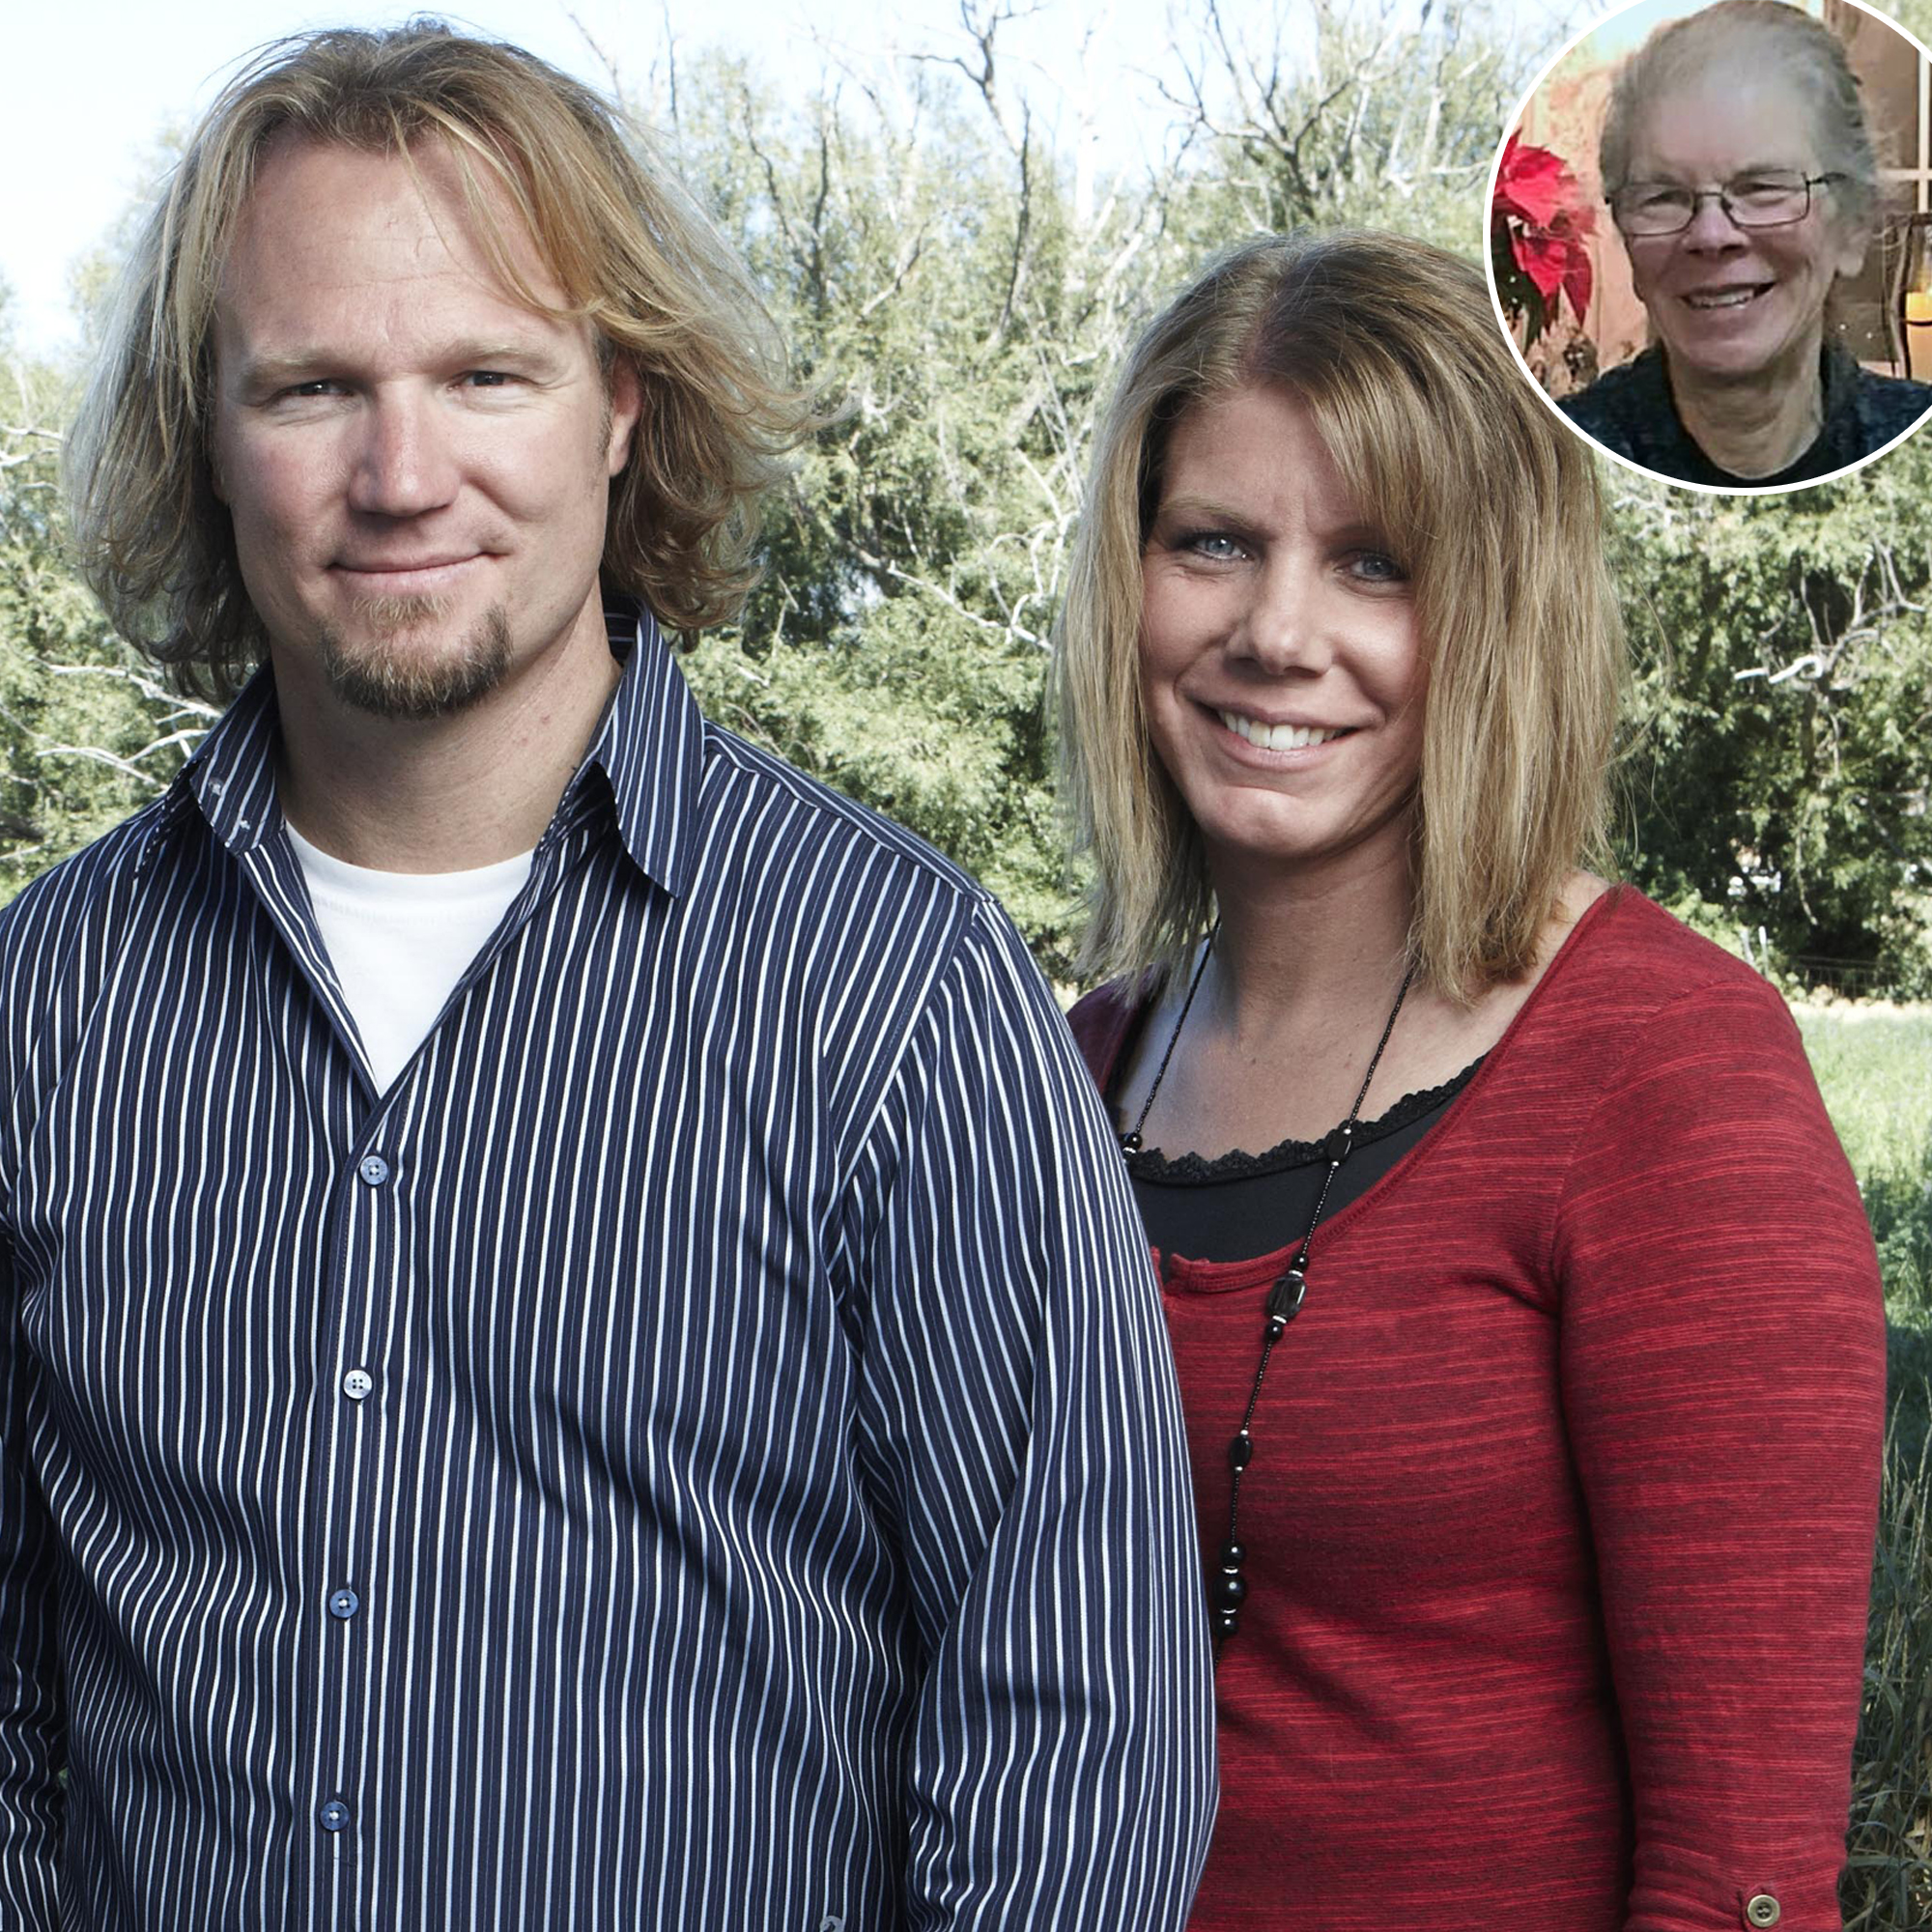 'Sister Wives' Stars Meri and Kody Brown Mourn the Loss of Her Mother